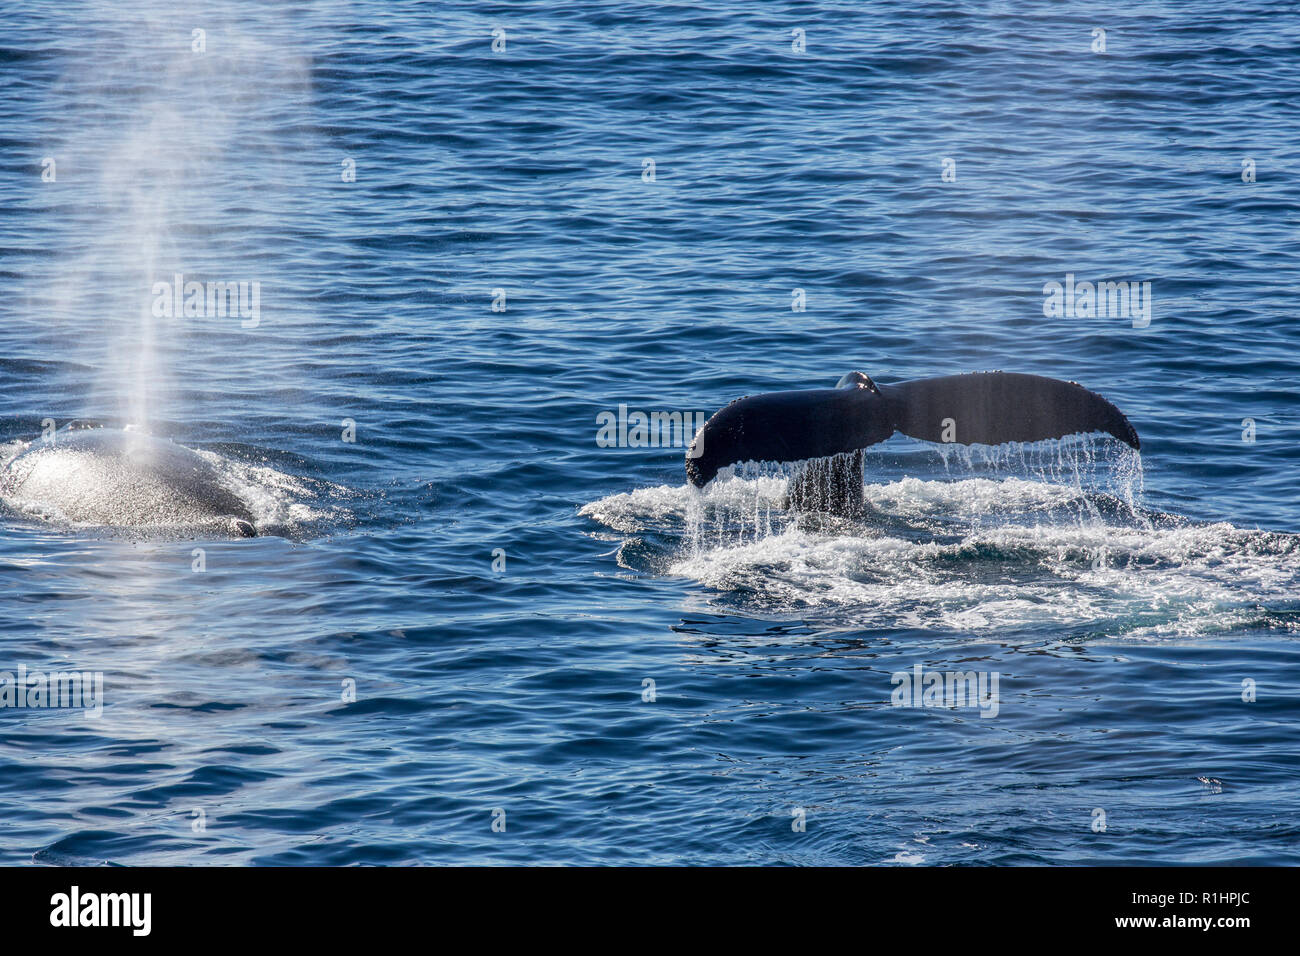 Antarctic minke whale (Balaenoptera bonaerensis). This whale is found in the Southern hemisphere, spending the winter in tropical waters and migrating Stock Photo